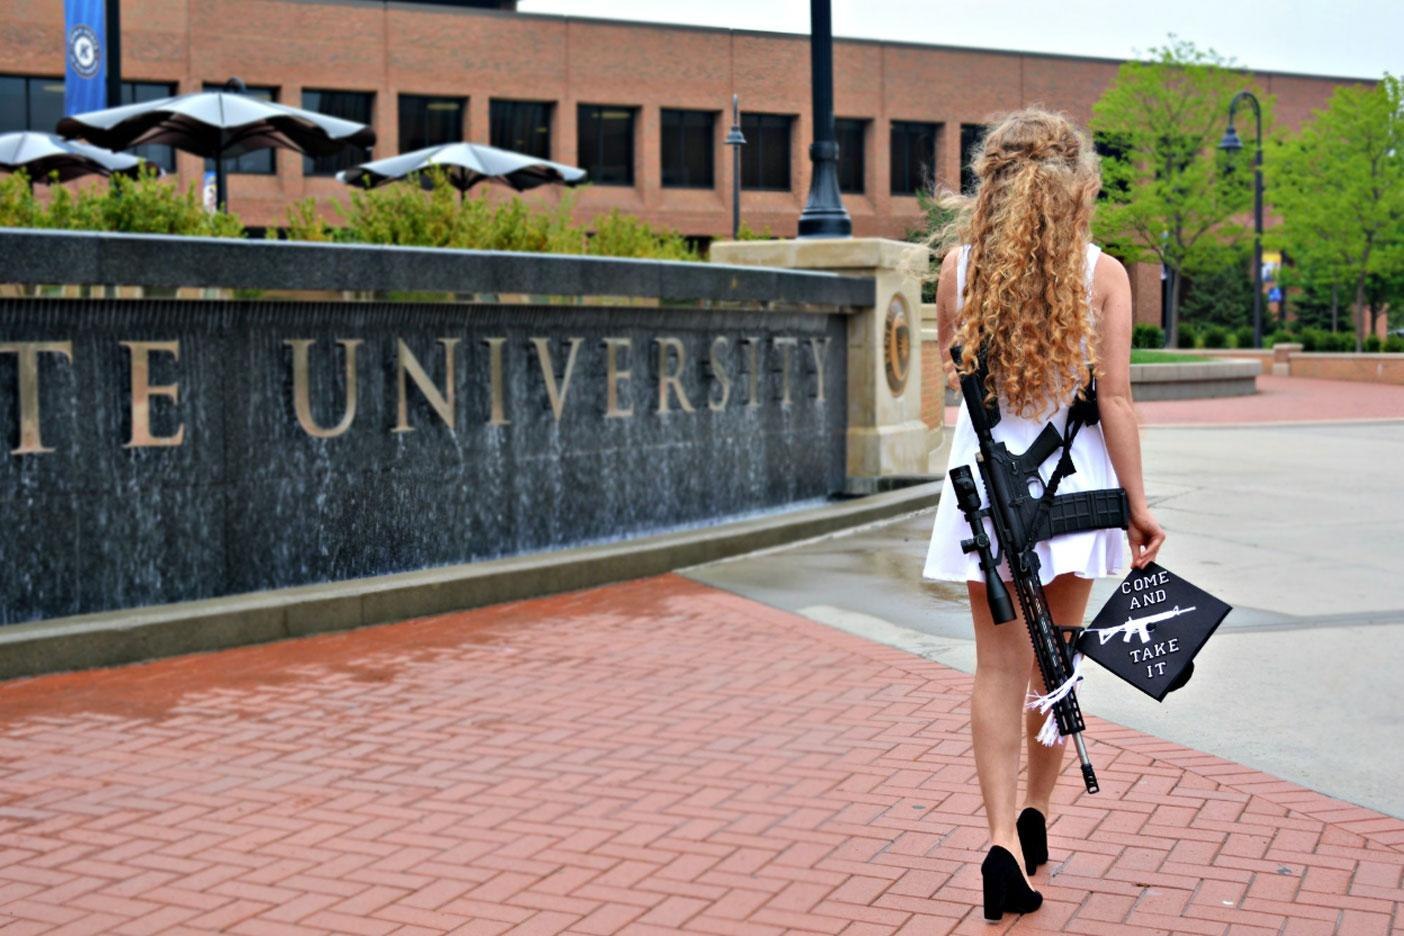 Woman gets death threats after shocking graduation photo